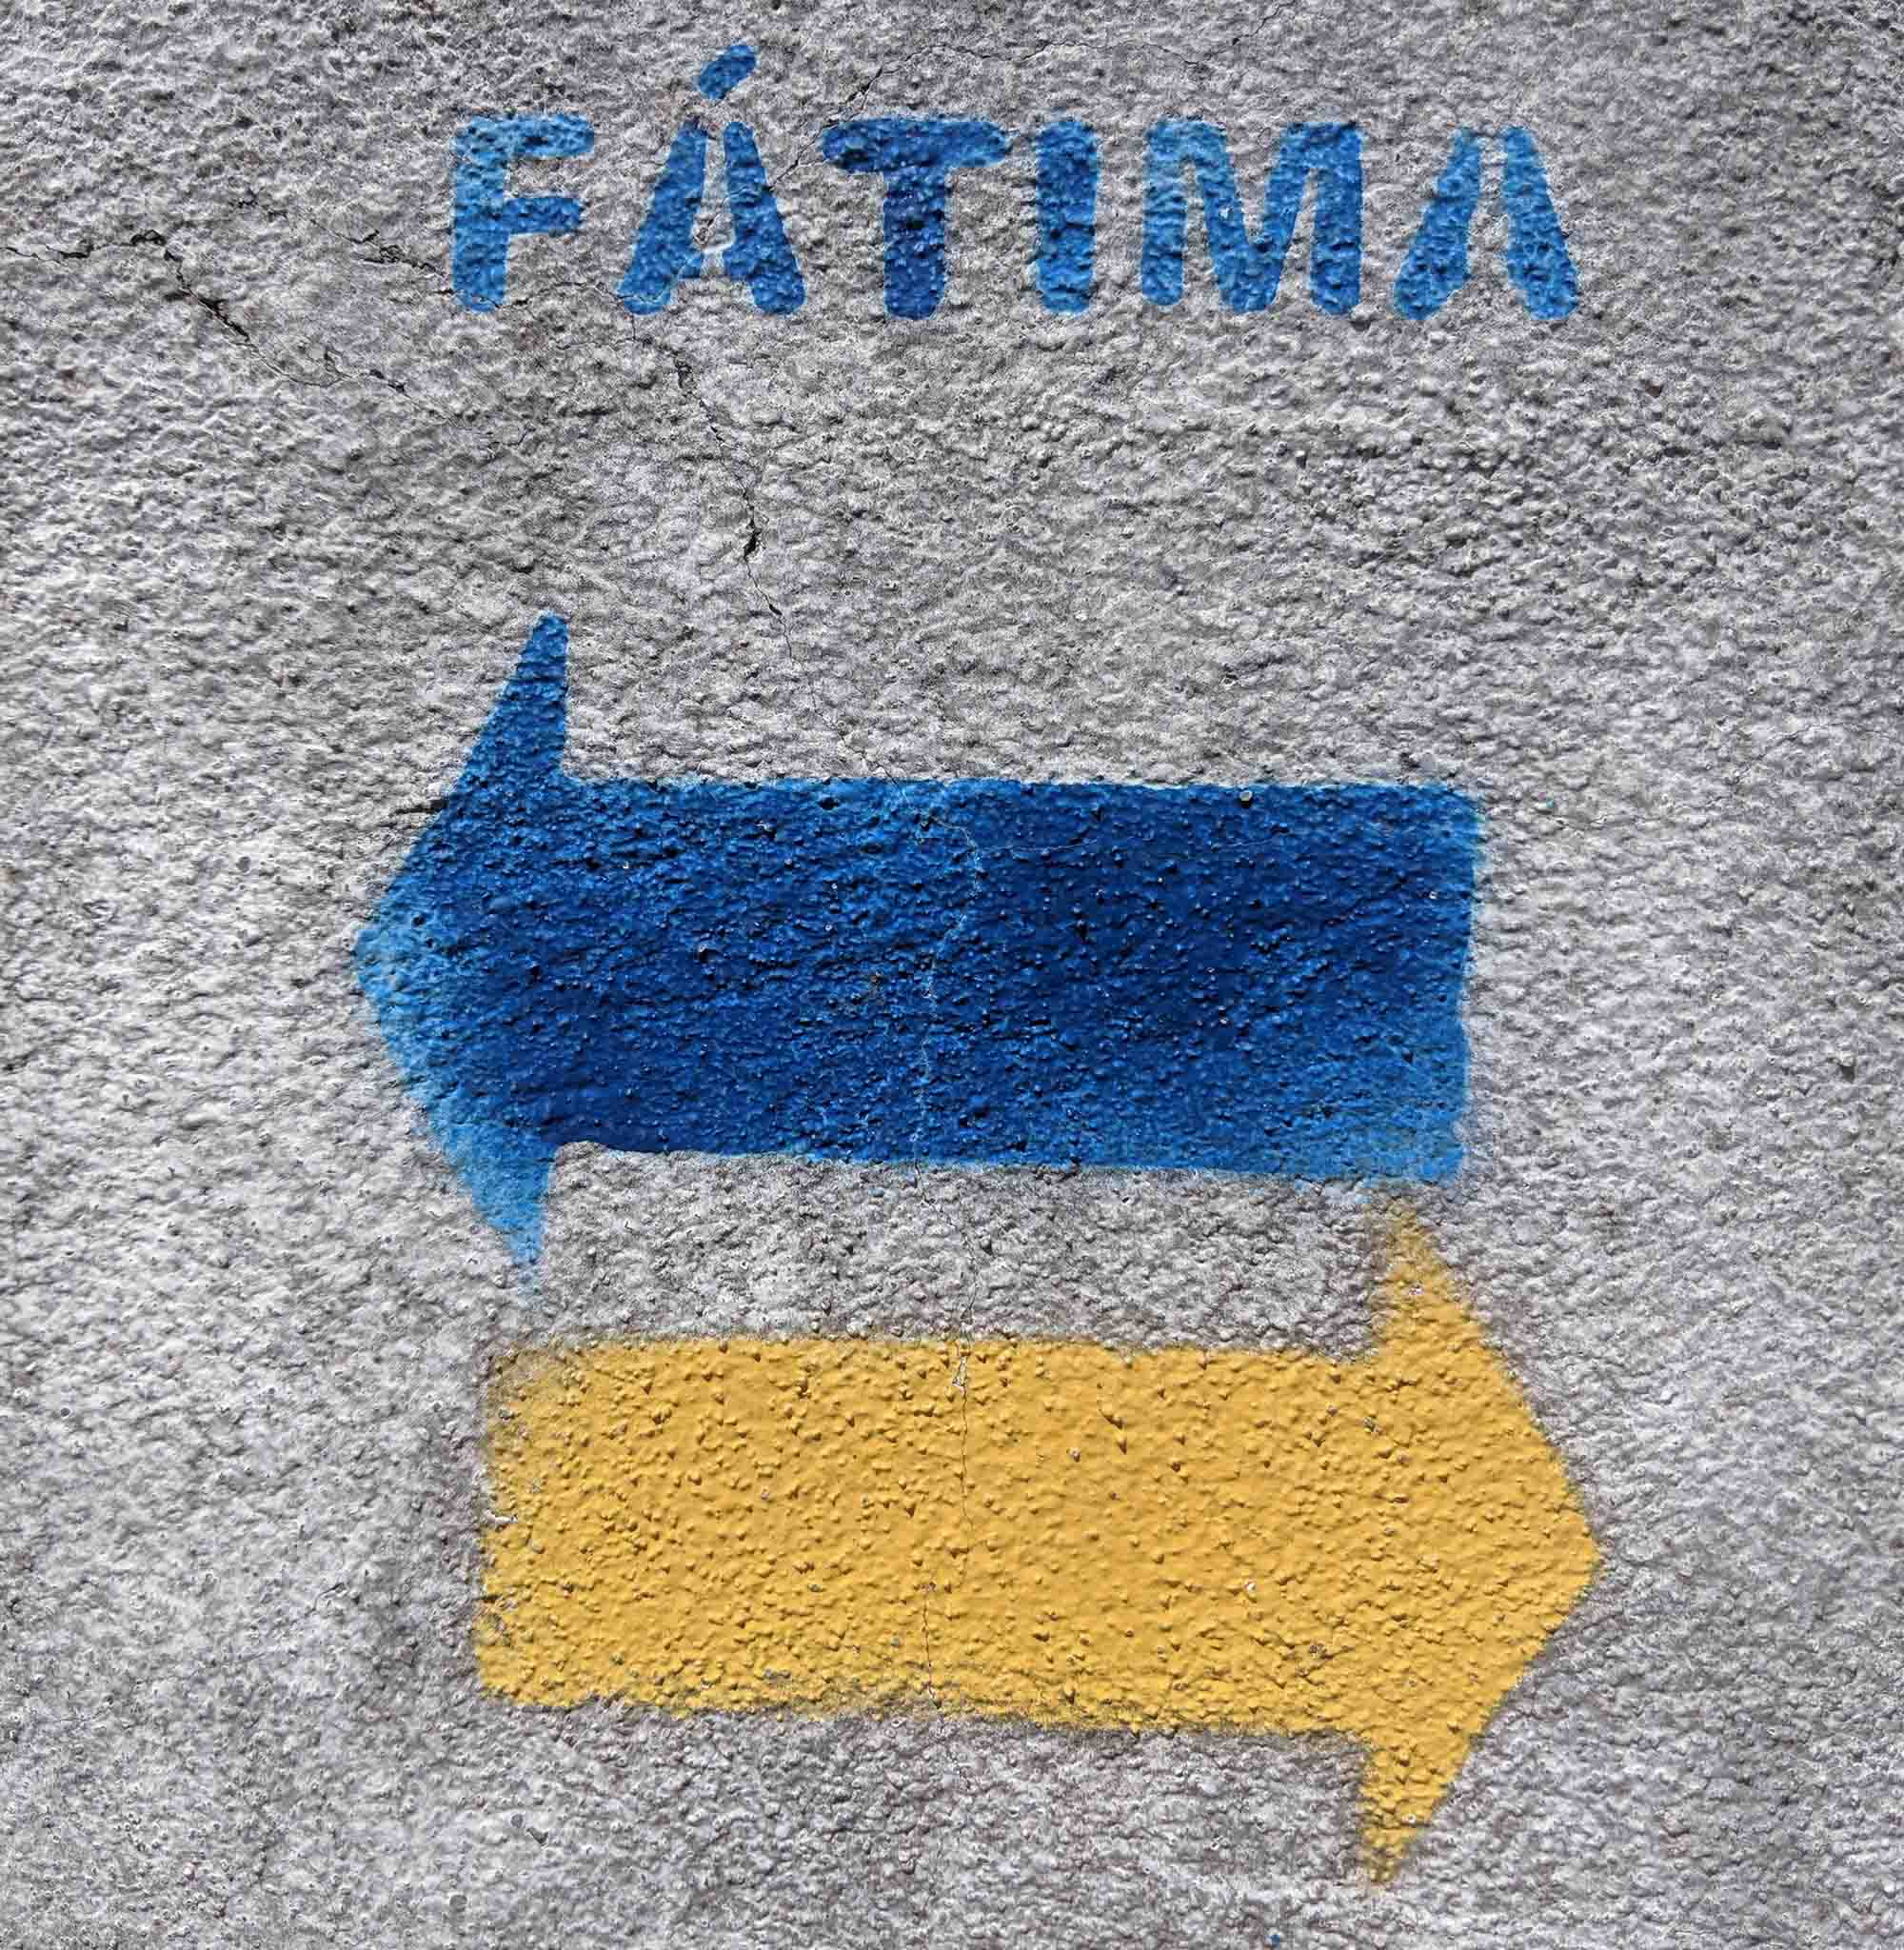 Fatima Pilgramage sign